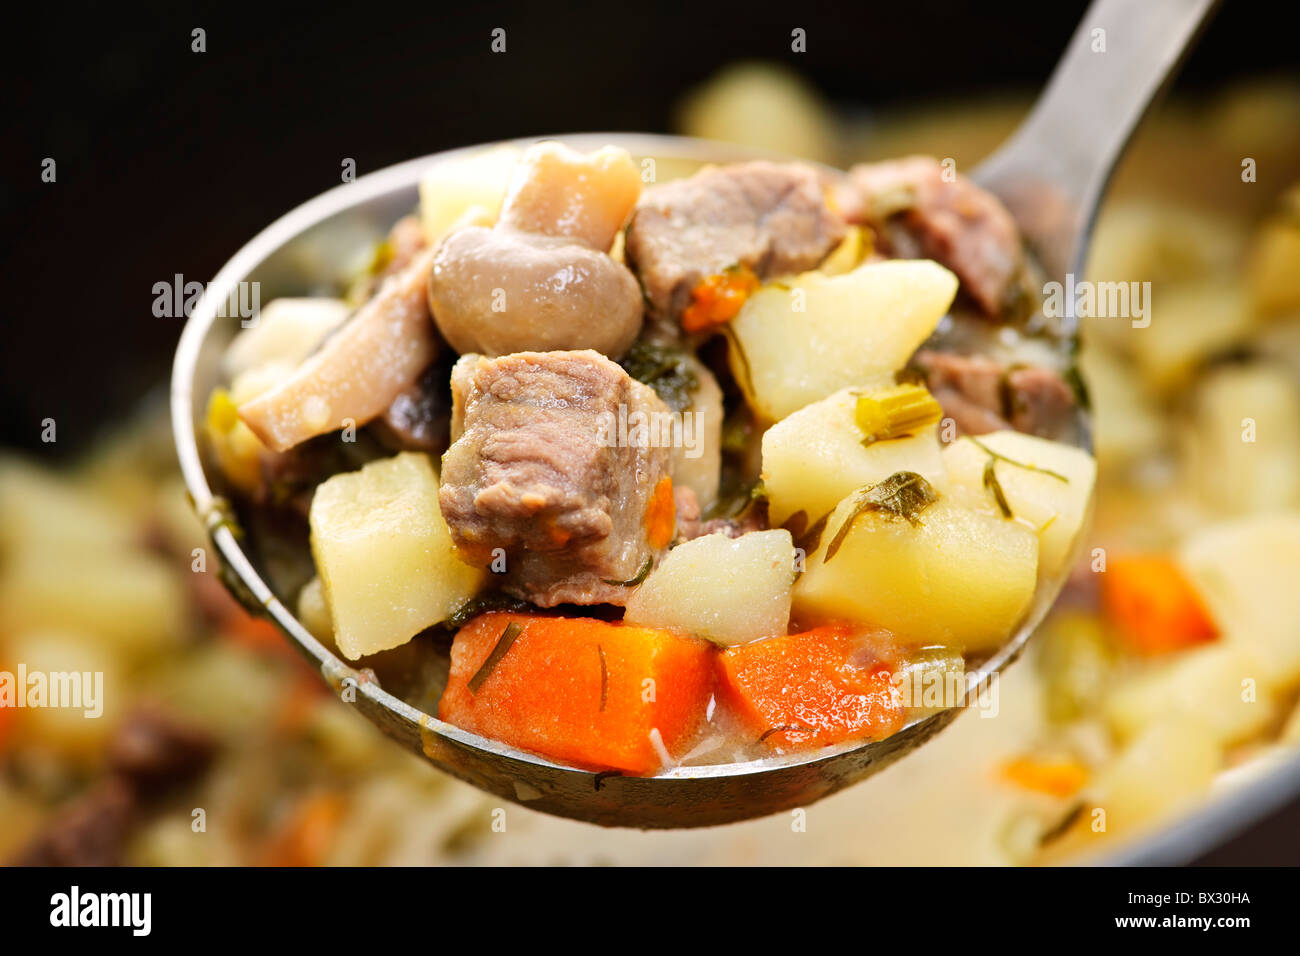 Hearty beef and potatoes stew with vegetables served with ladle - Stock Image